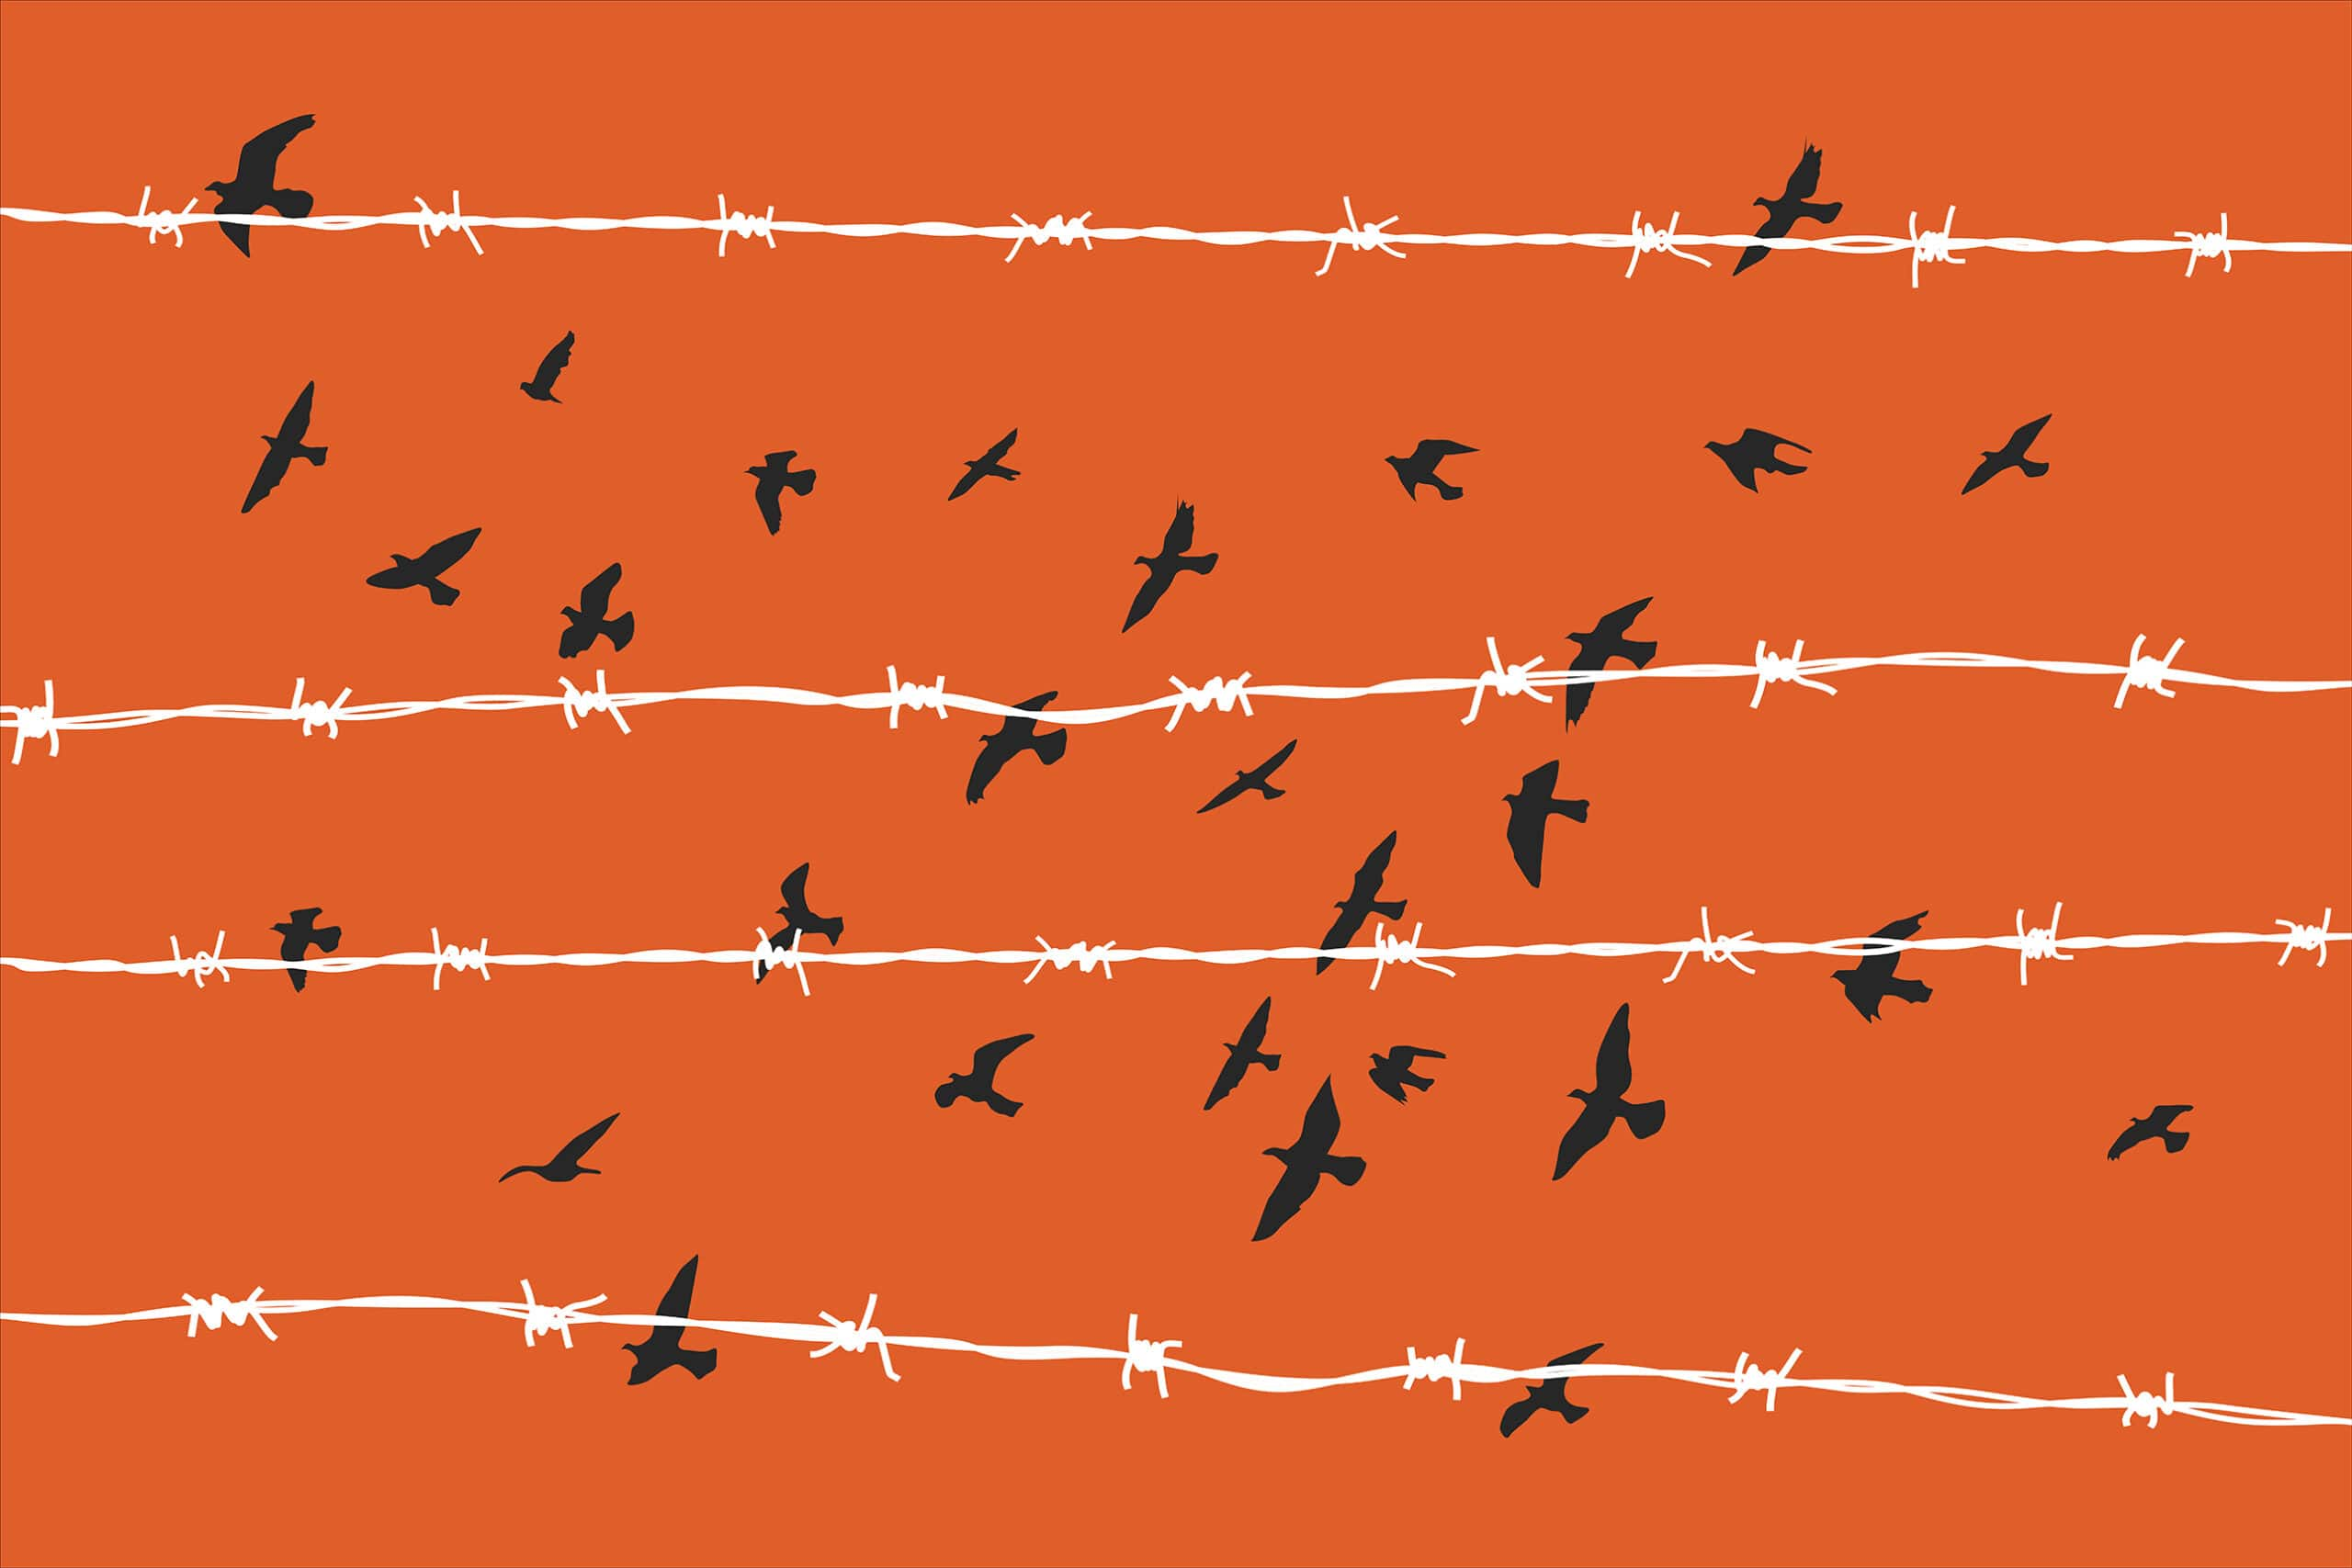 Graphic of birds fly behind barbed wire